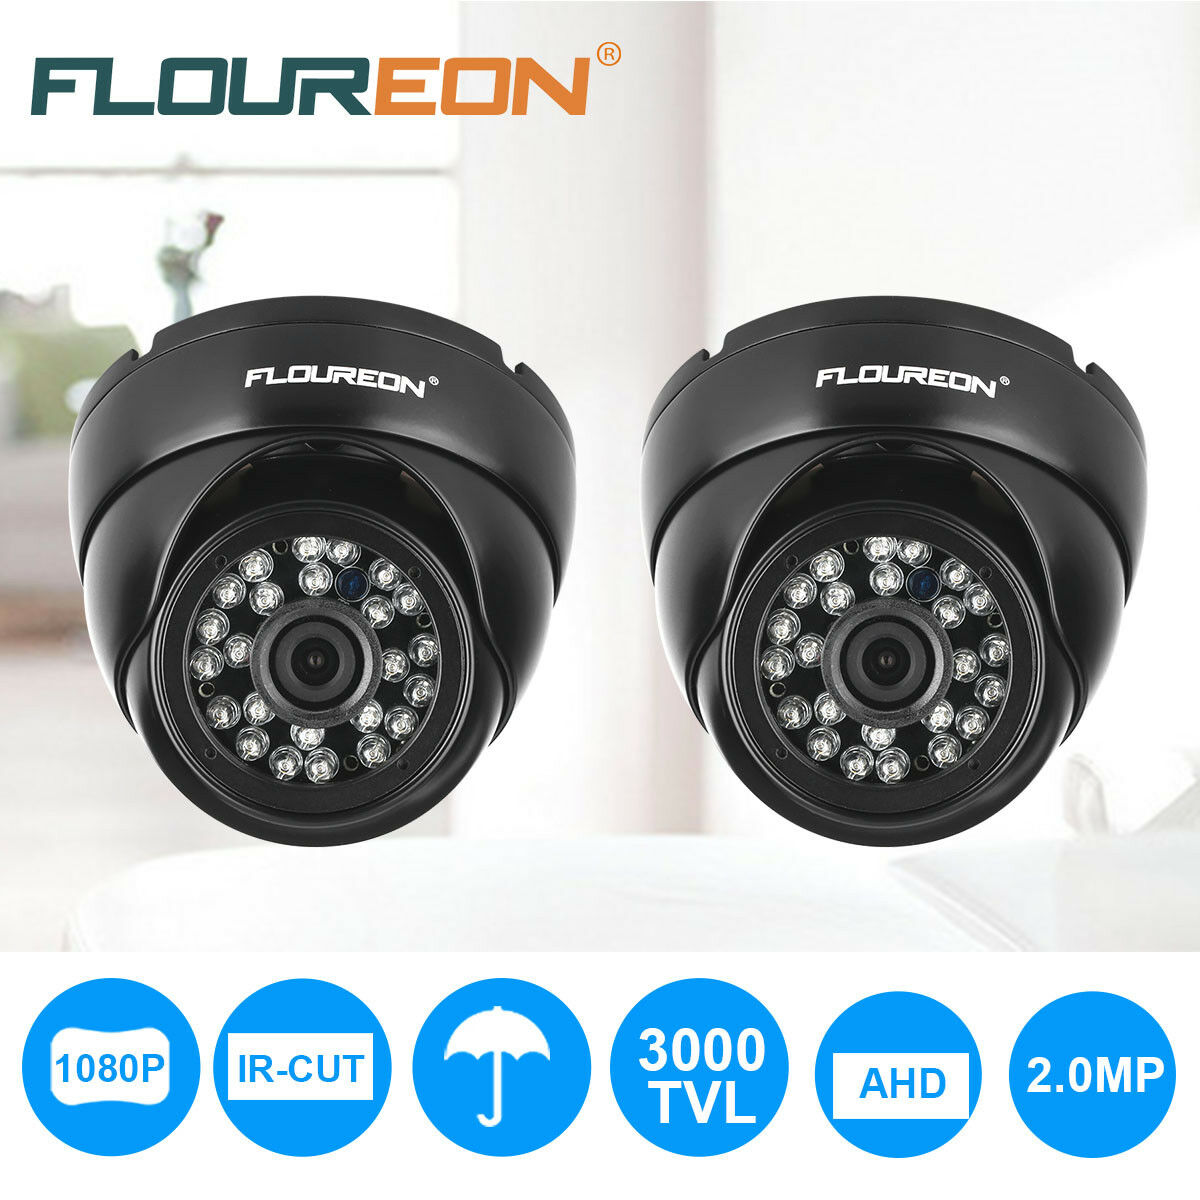 Floureon 1080p AHD 2.0mp 3000tvl Infrarojo CCTV DVR Sicurezza Esterna